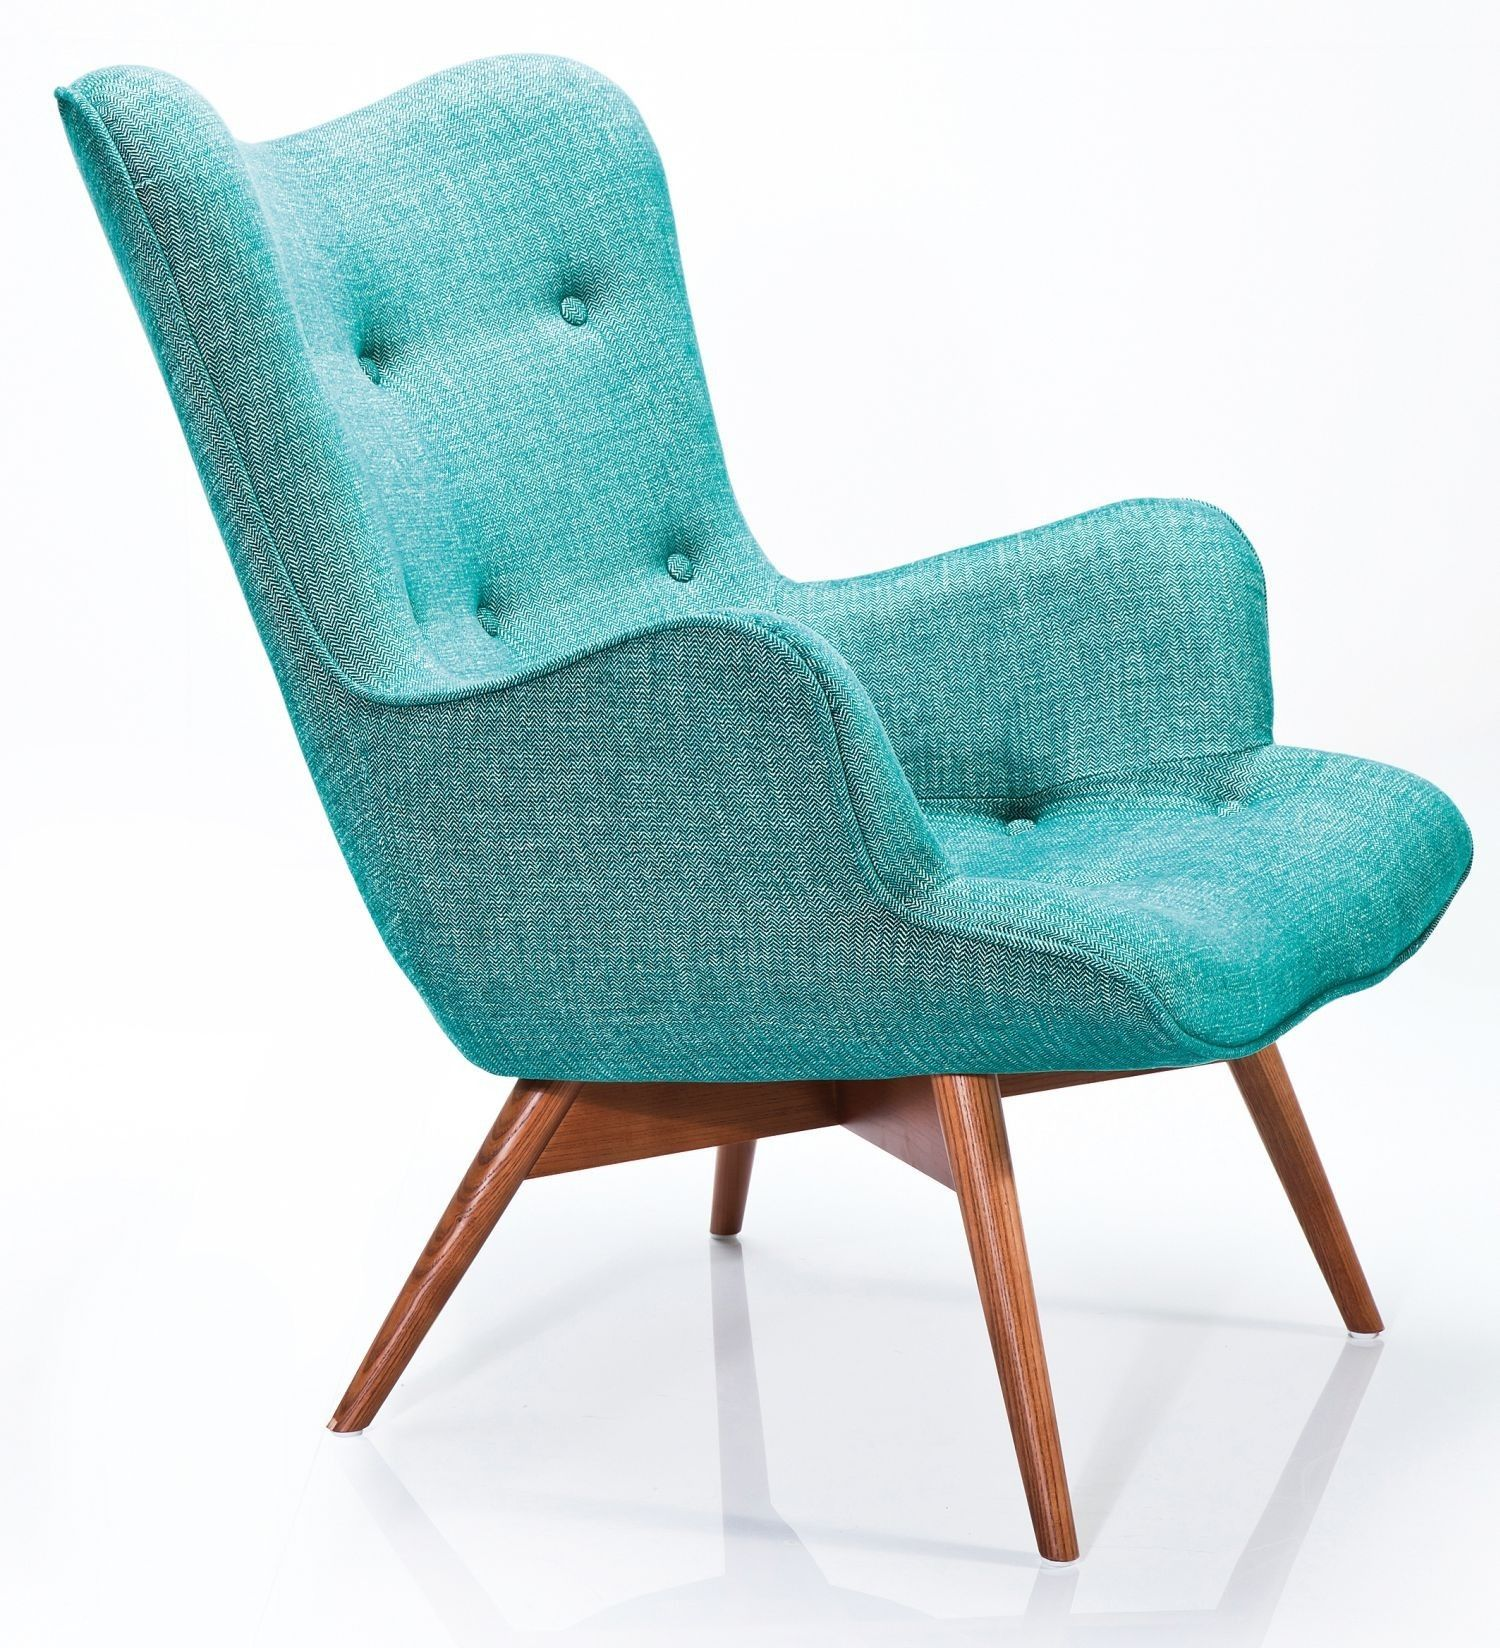 Design Fauteuil Groen.Pin On Home